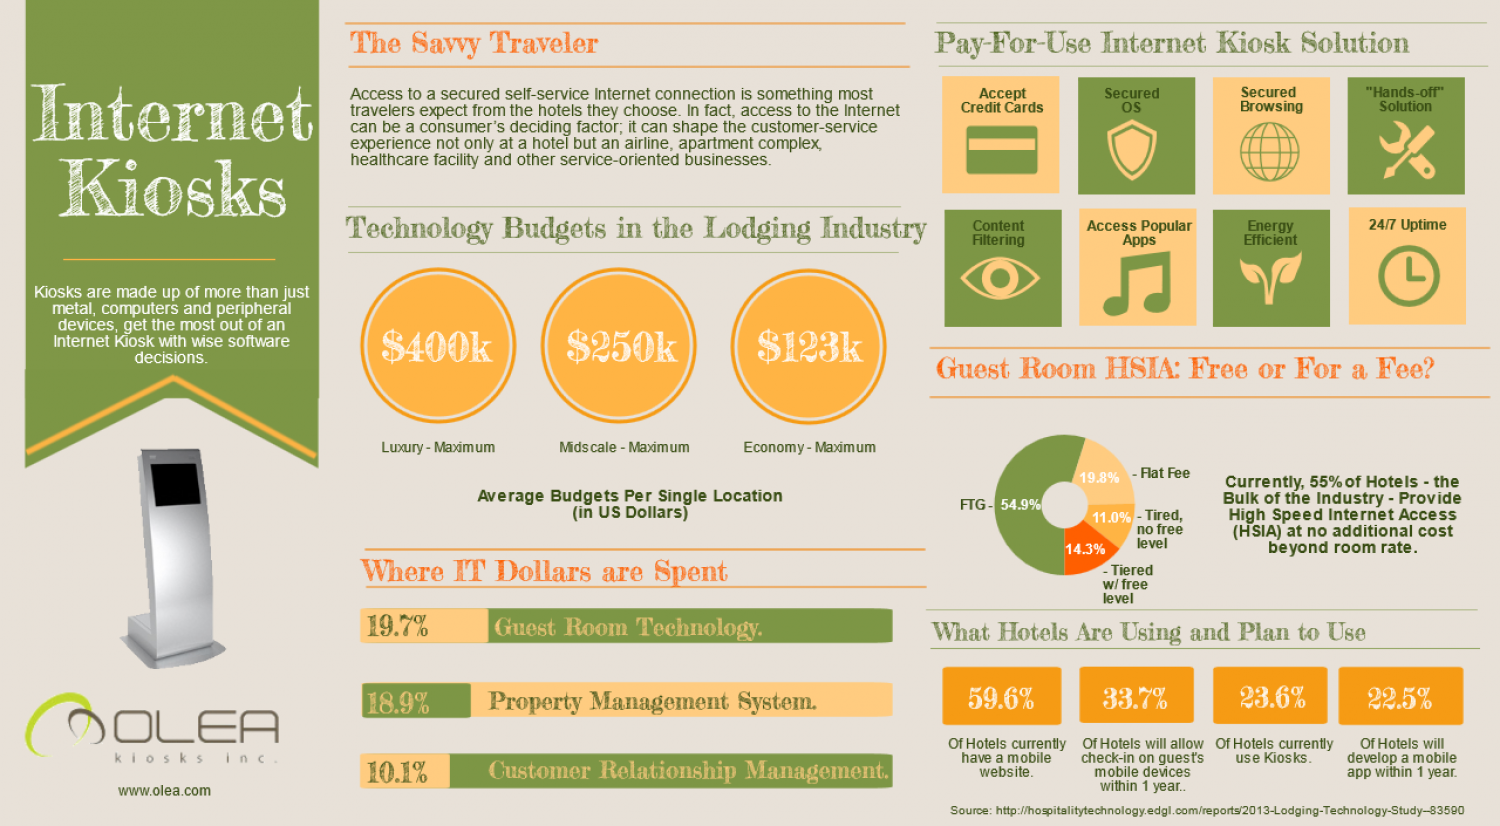 Internet Kiosks Infographic